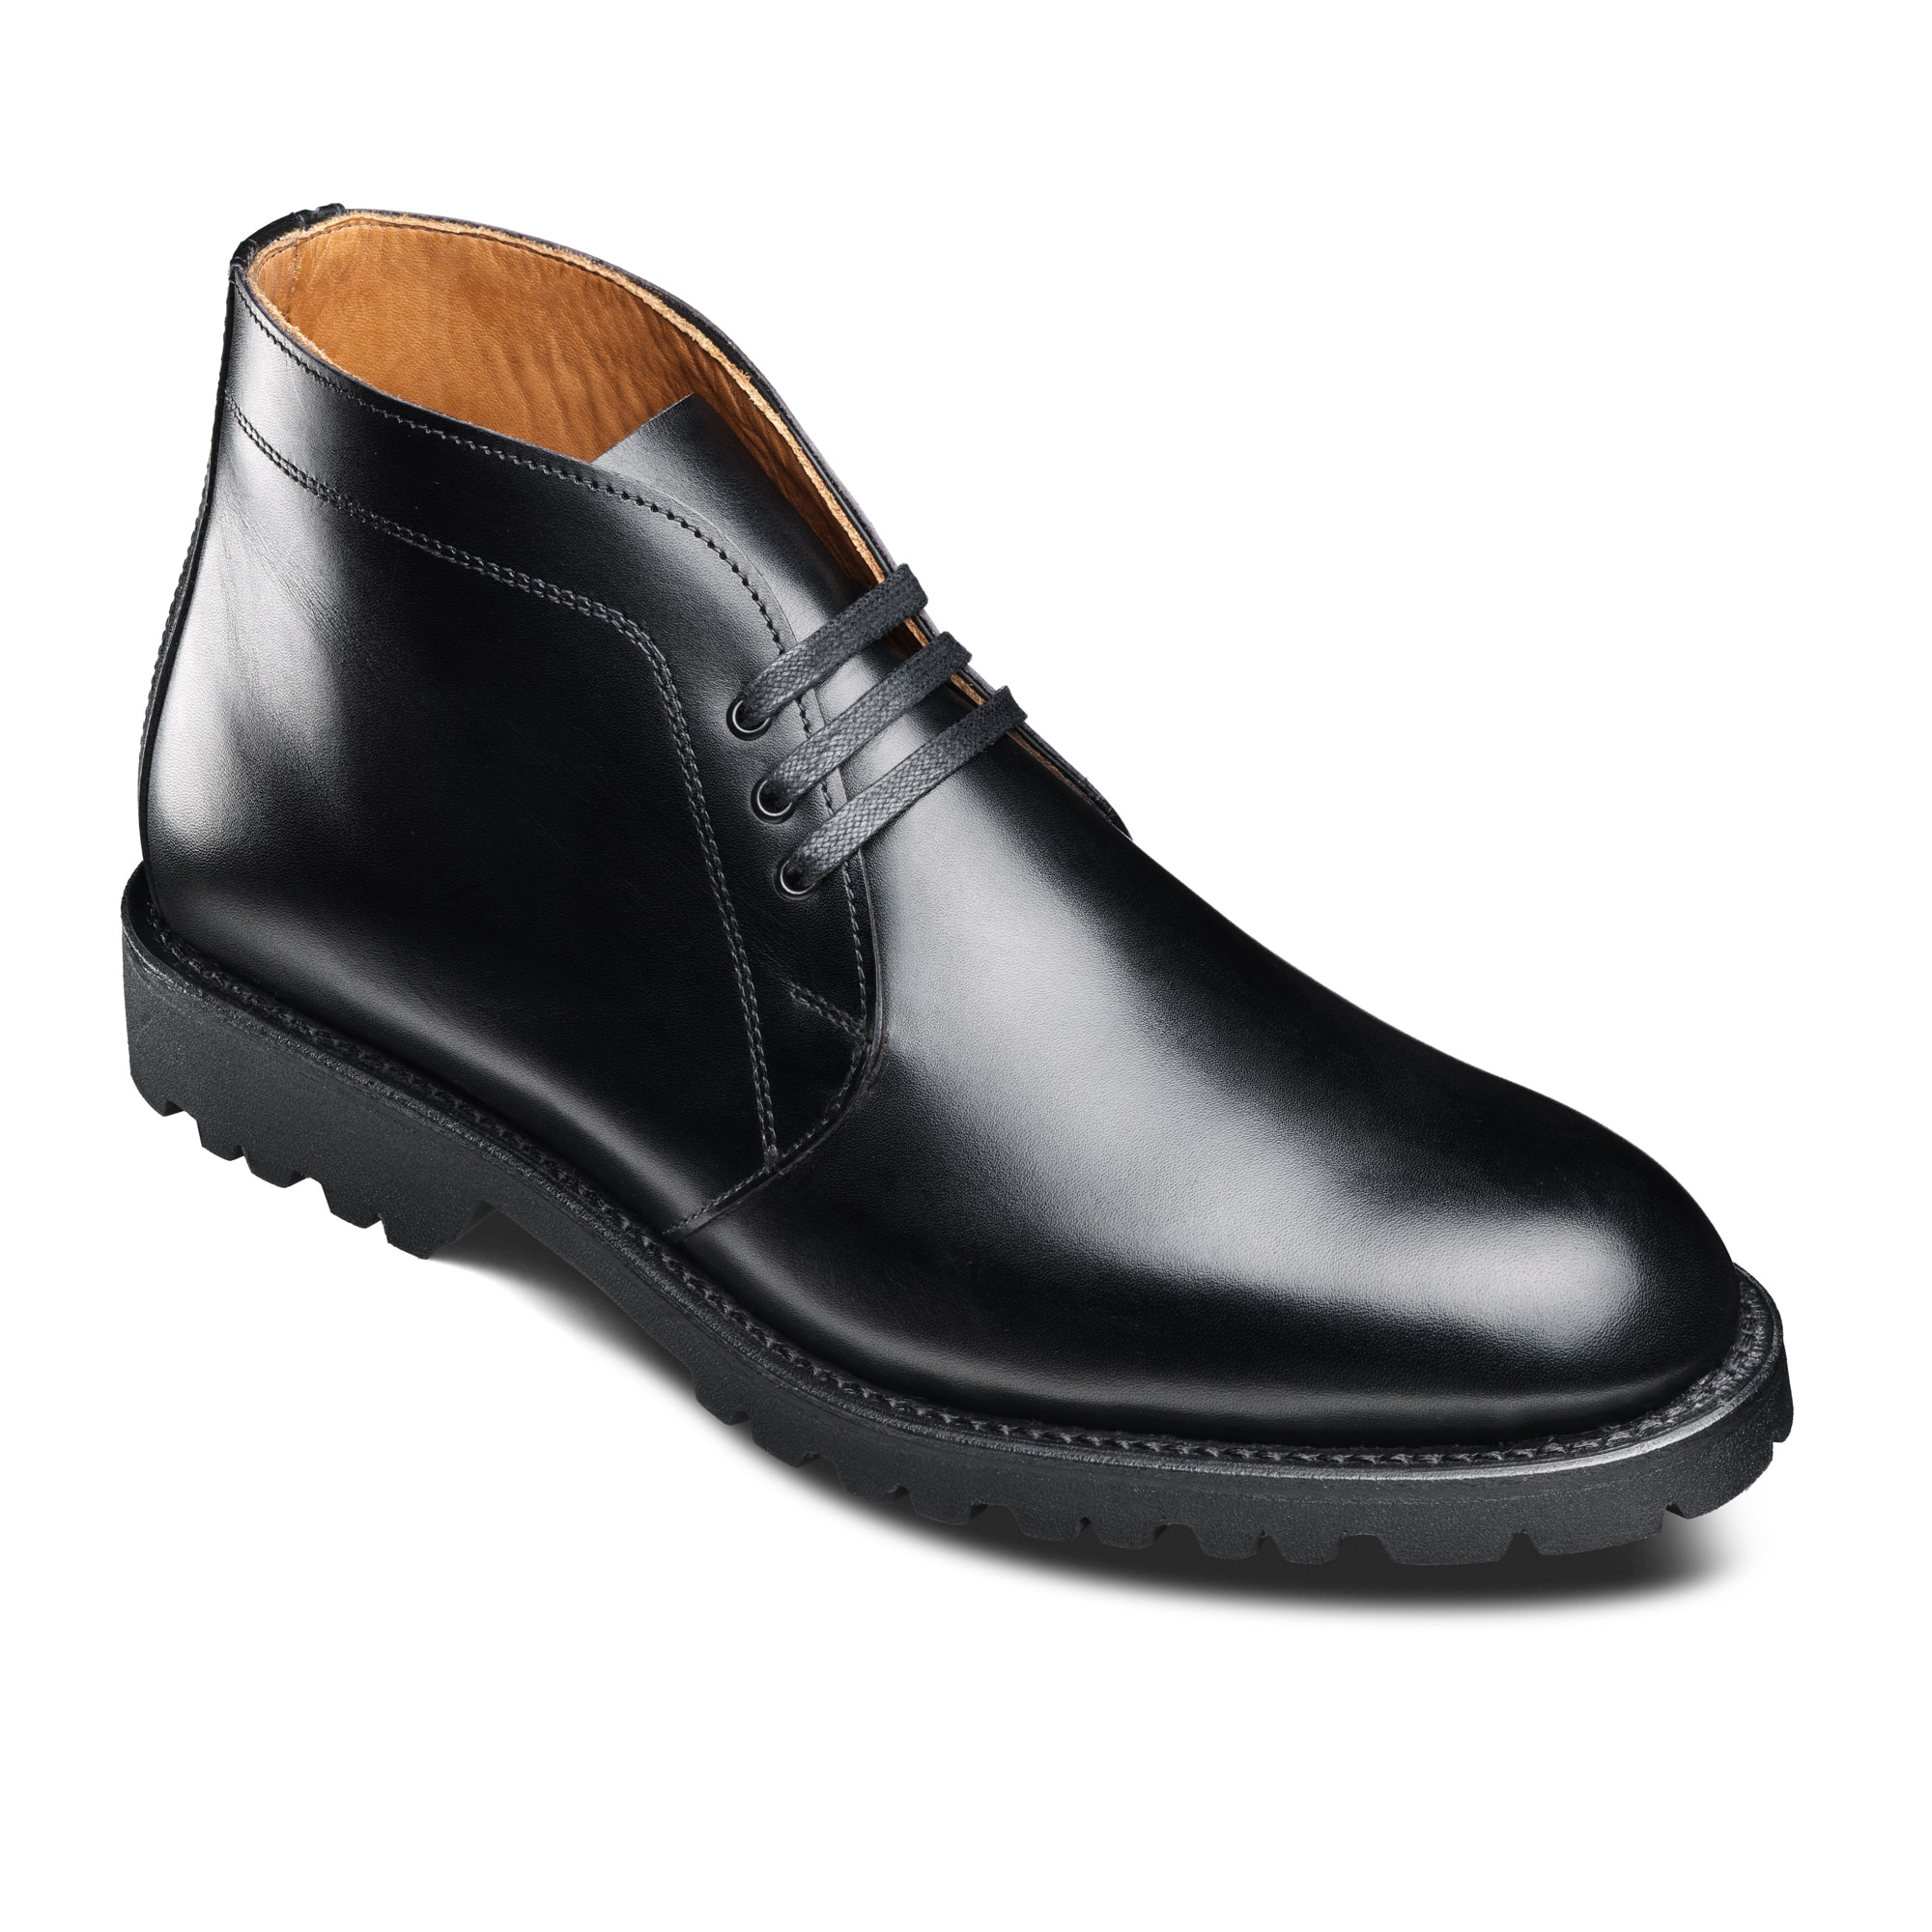 Allen Edmonds Boots: Tate Chukka (USA made) $141.60, Rockies Highline $157.60, Vancouver $157.60, Bellevue Chukka $157.60, More  + free shipping